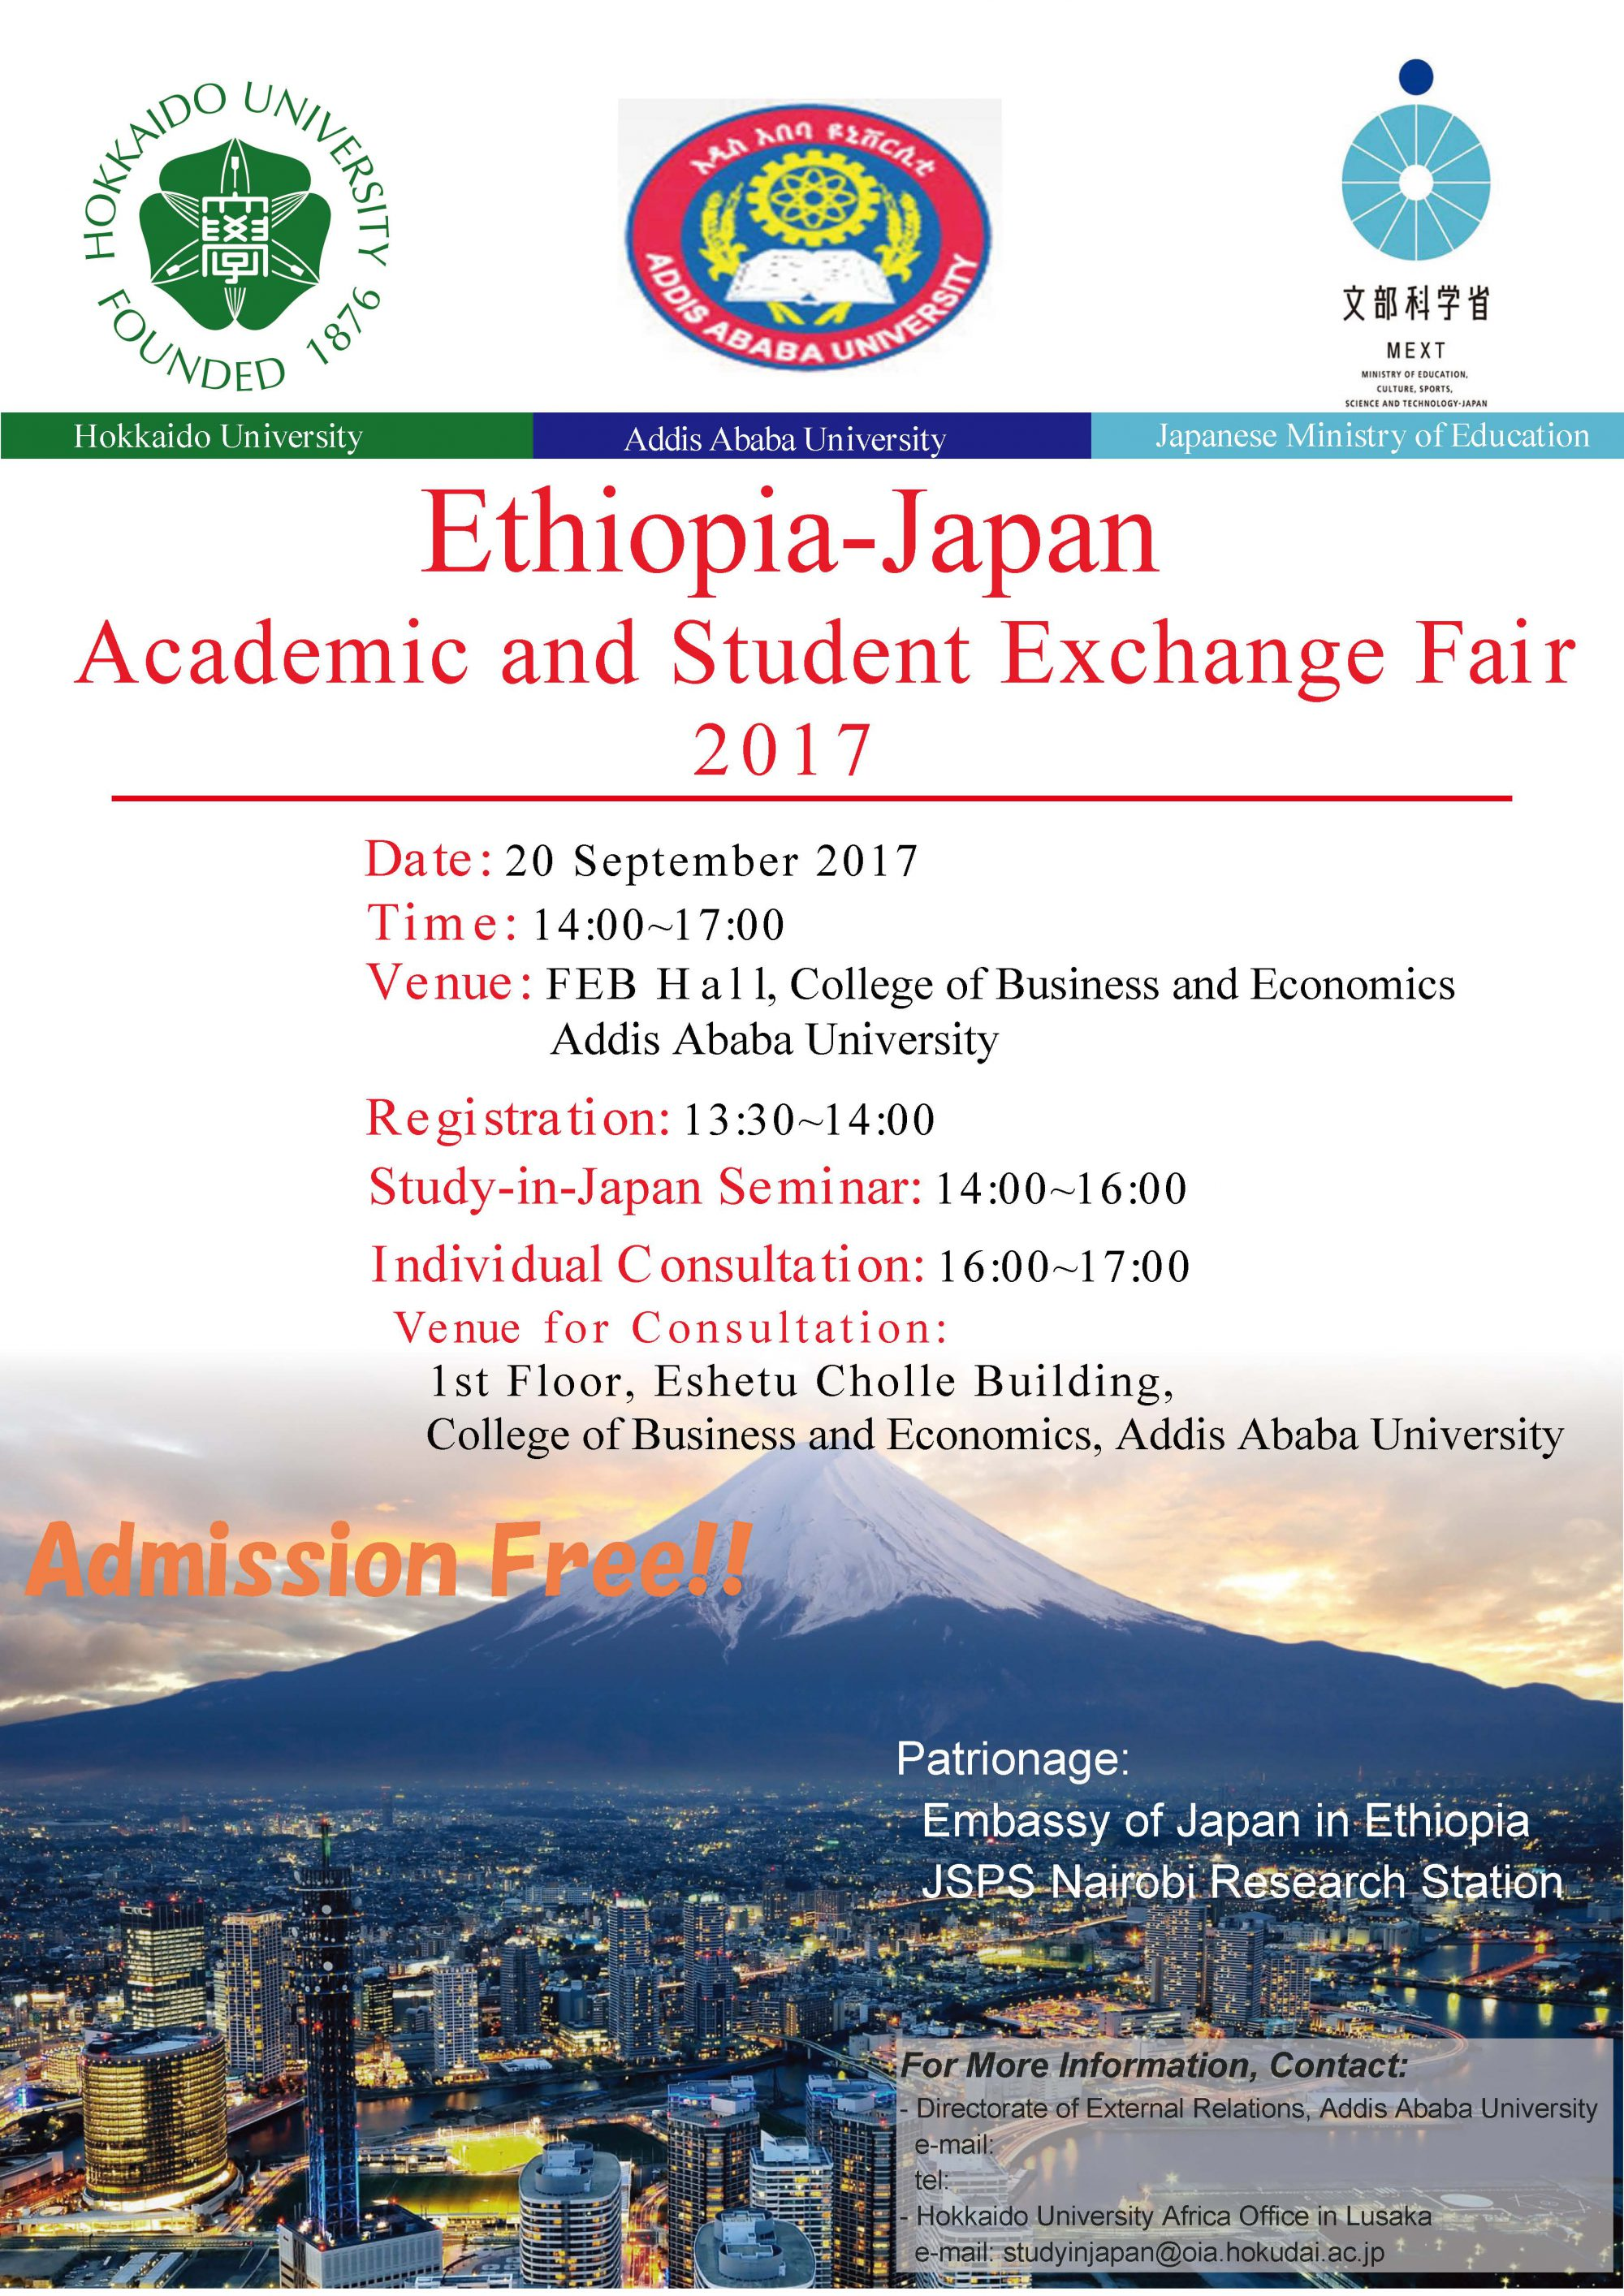 ETHIOPIA-JAPAN ACADEMIC AND STUDENT EXCHANGE FAIR IN ADDIS